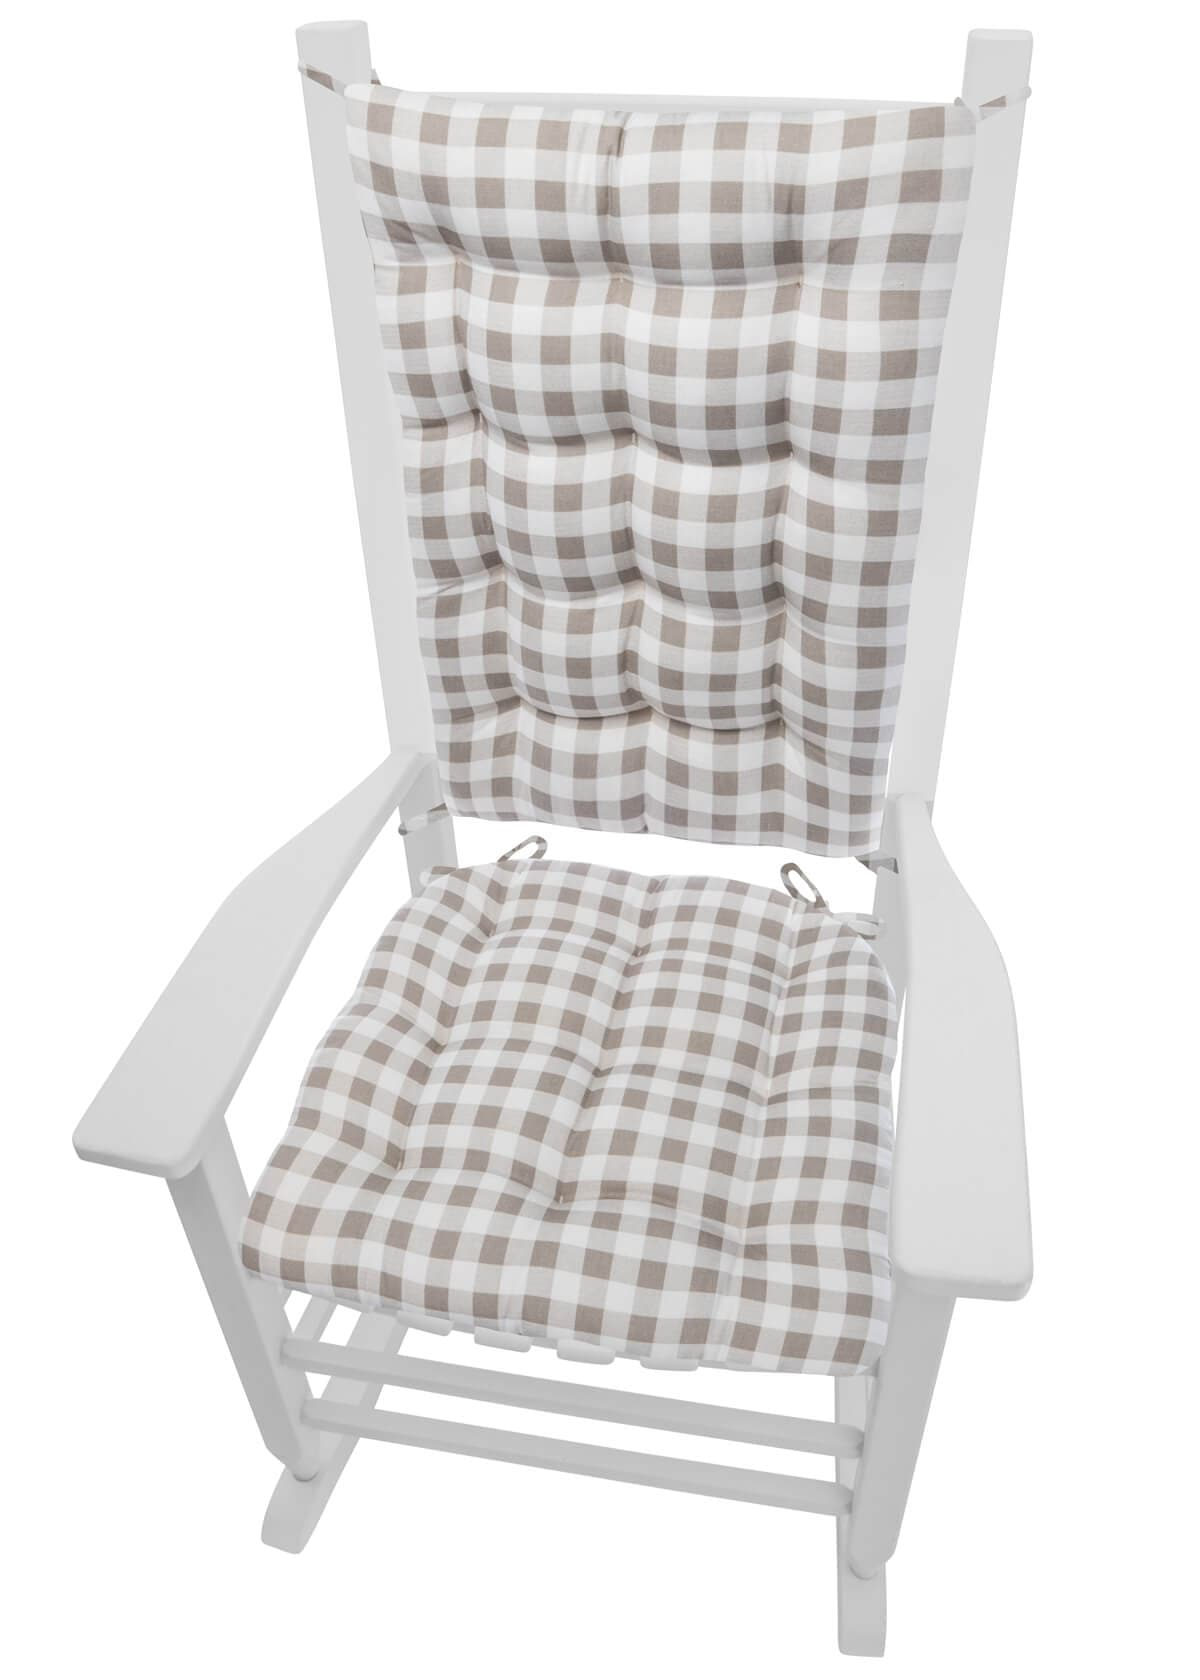 Classic Check Taupe Plaid Rocking Chair Cushions ...